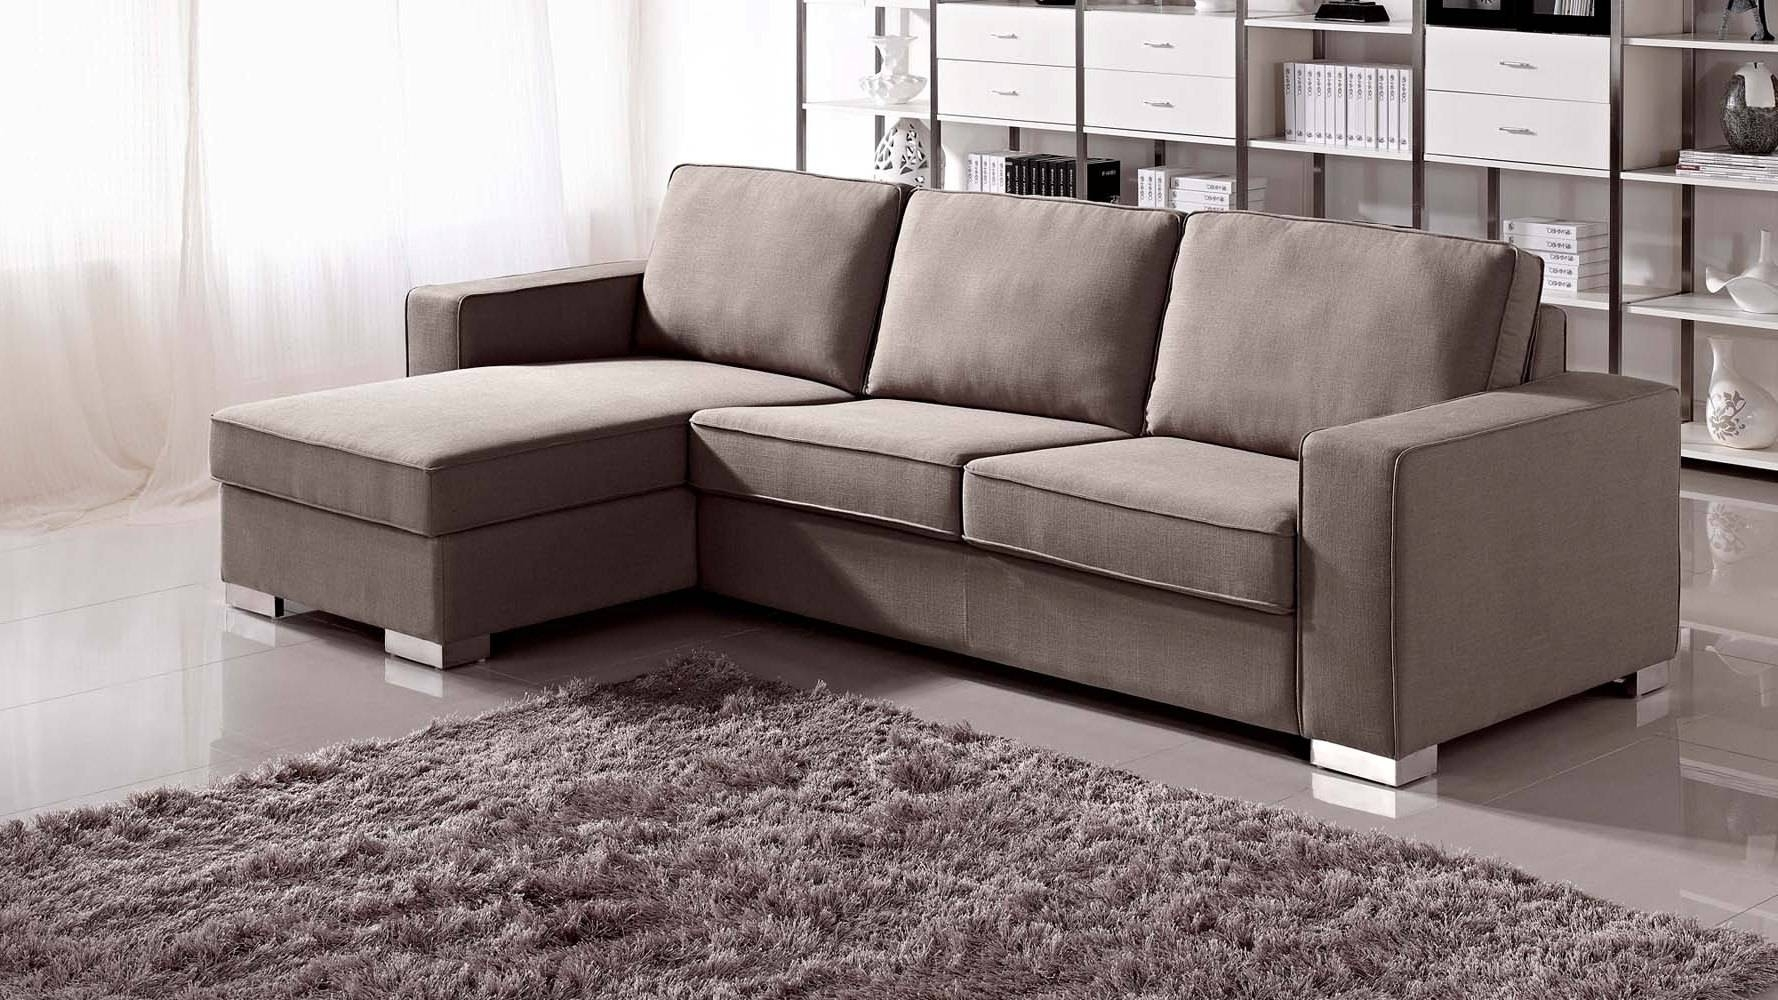 Furniture: Wondrous Alluring Sectional With Sleeper For Home With Sectional Sofas With Sleeper And Chaise (View 19 of 30)